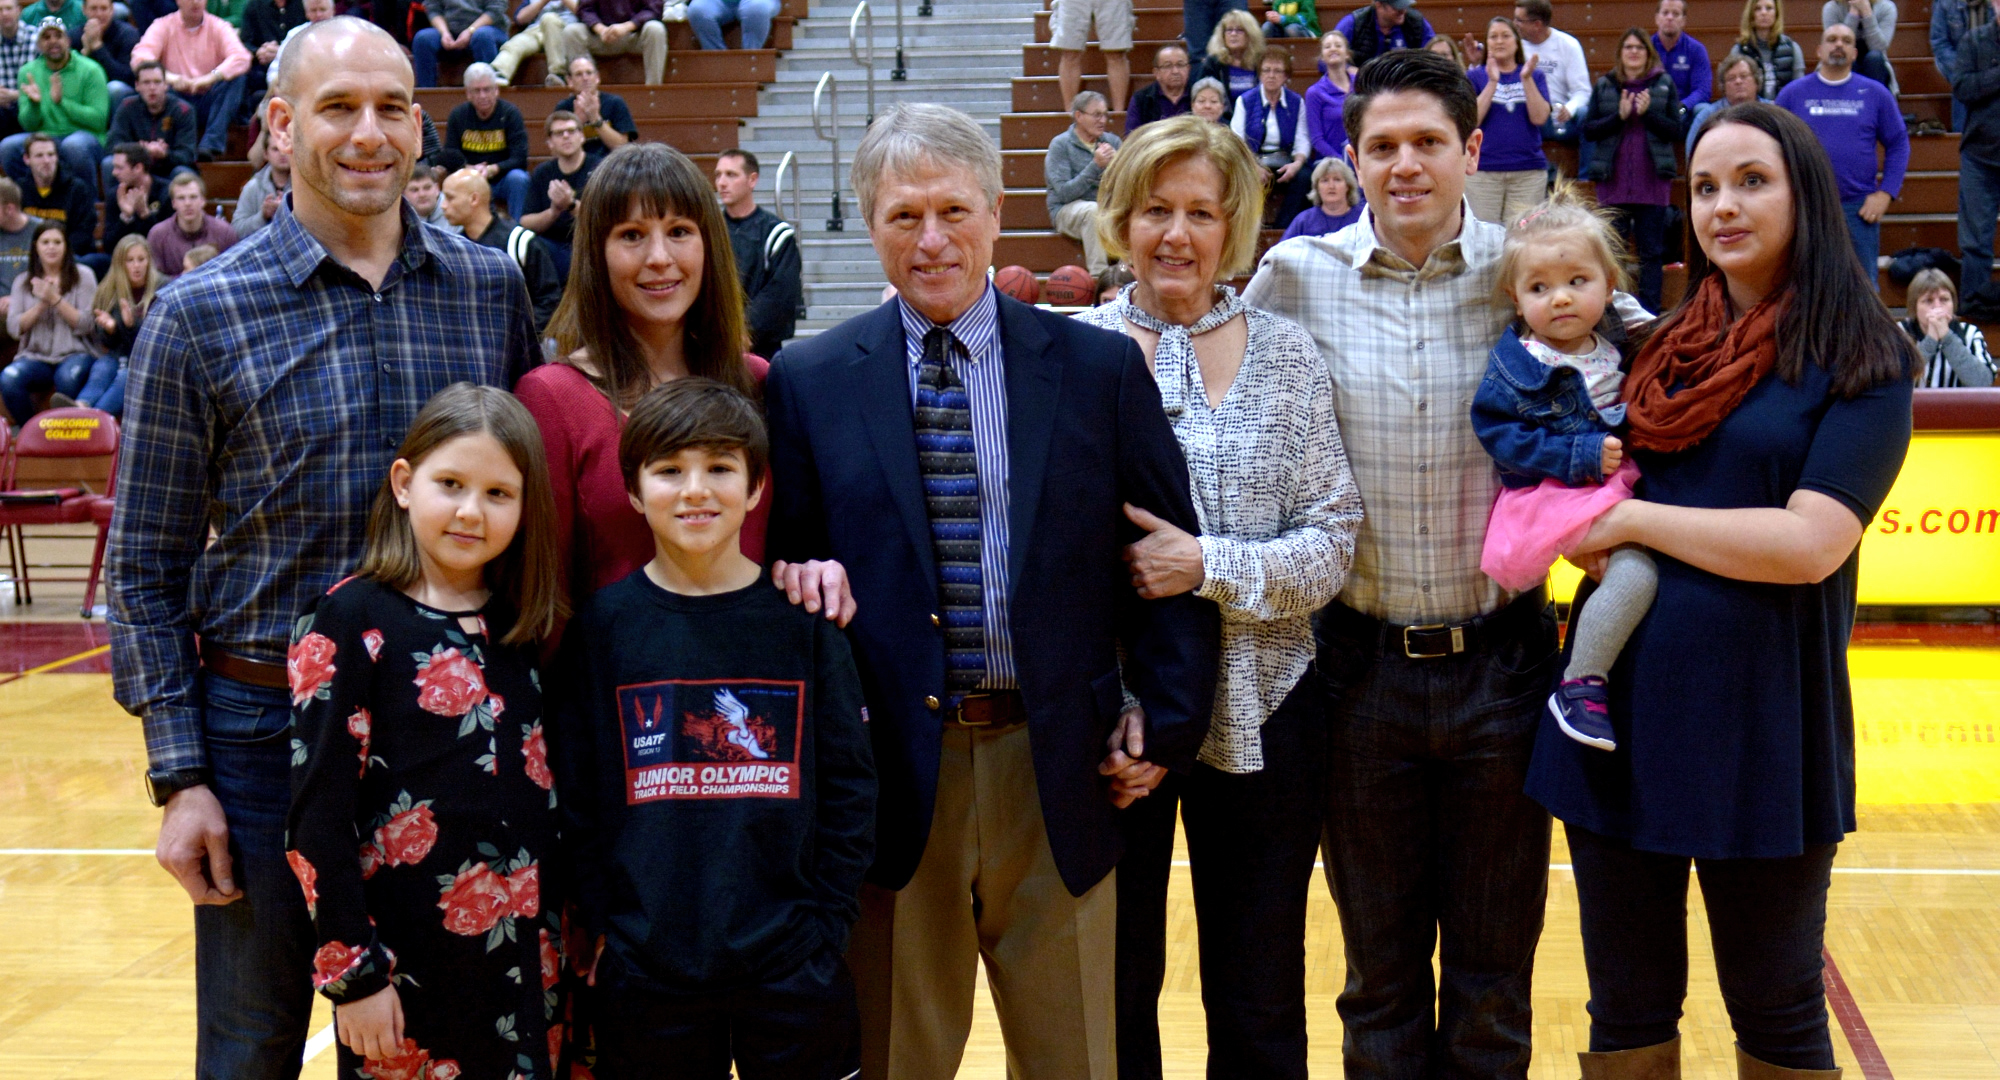 Concordia head coach Rich Glas is surrounded by his wife, kids and grandkids before the final game of his legendary 37-year career.